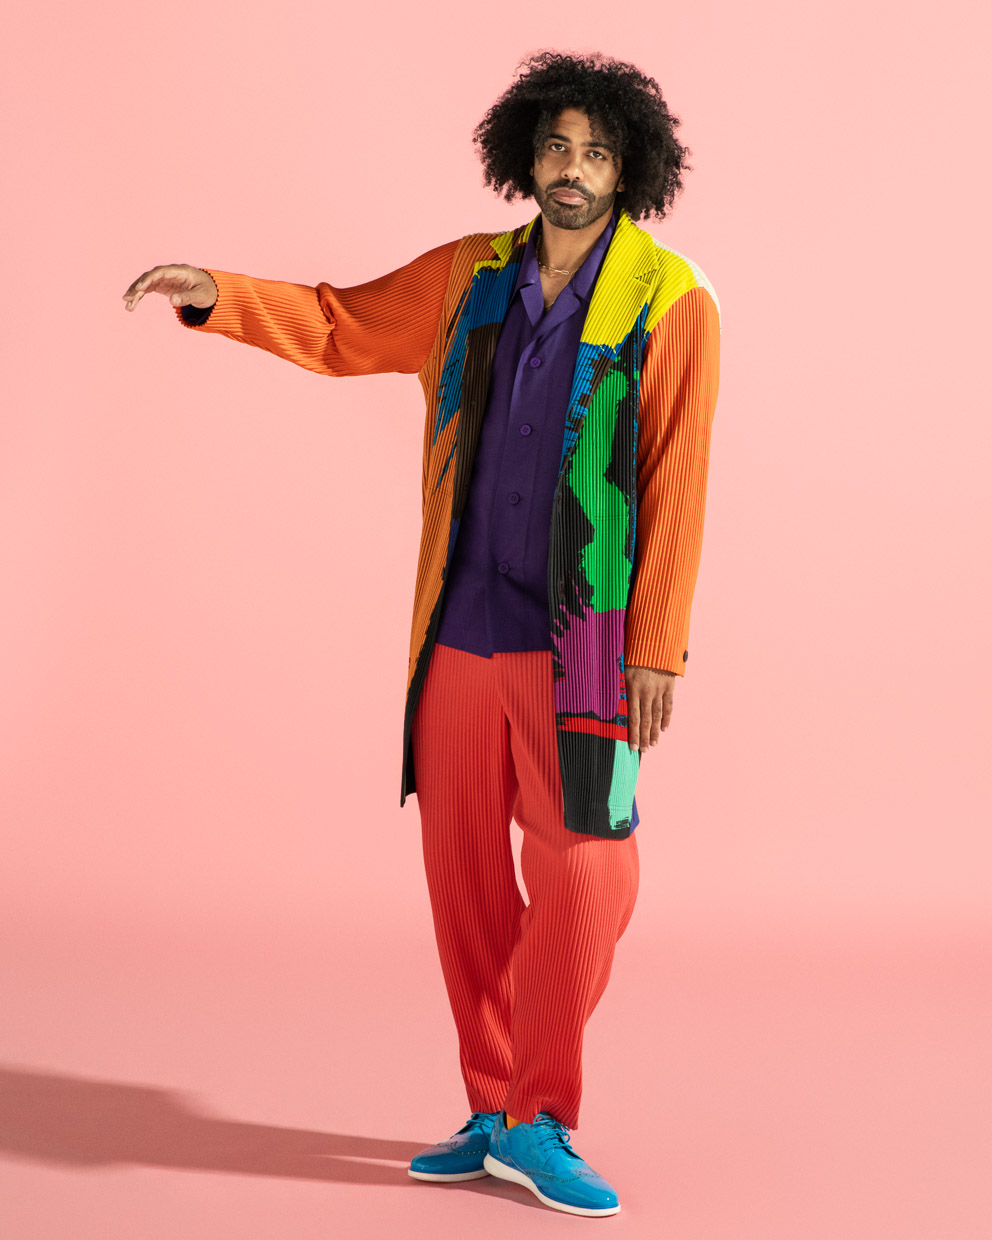 Daveed Diggs. Empire Magazine.